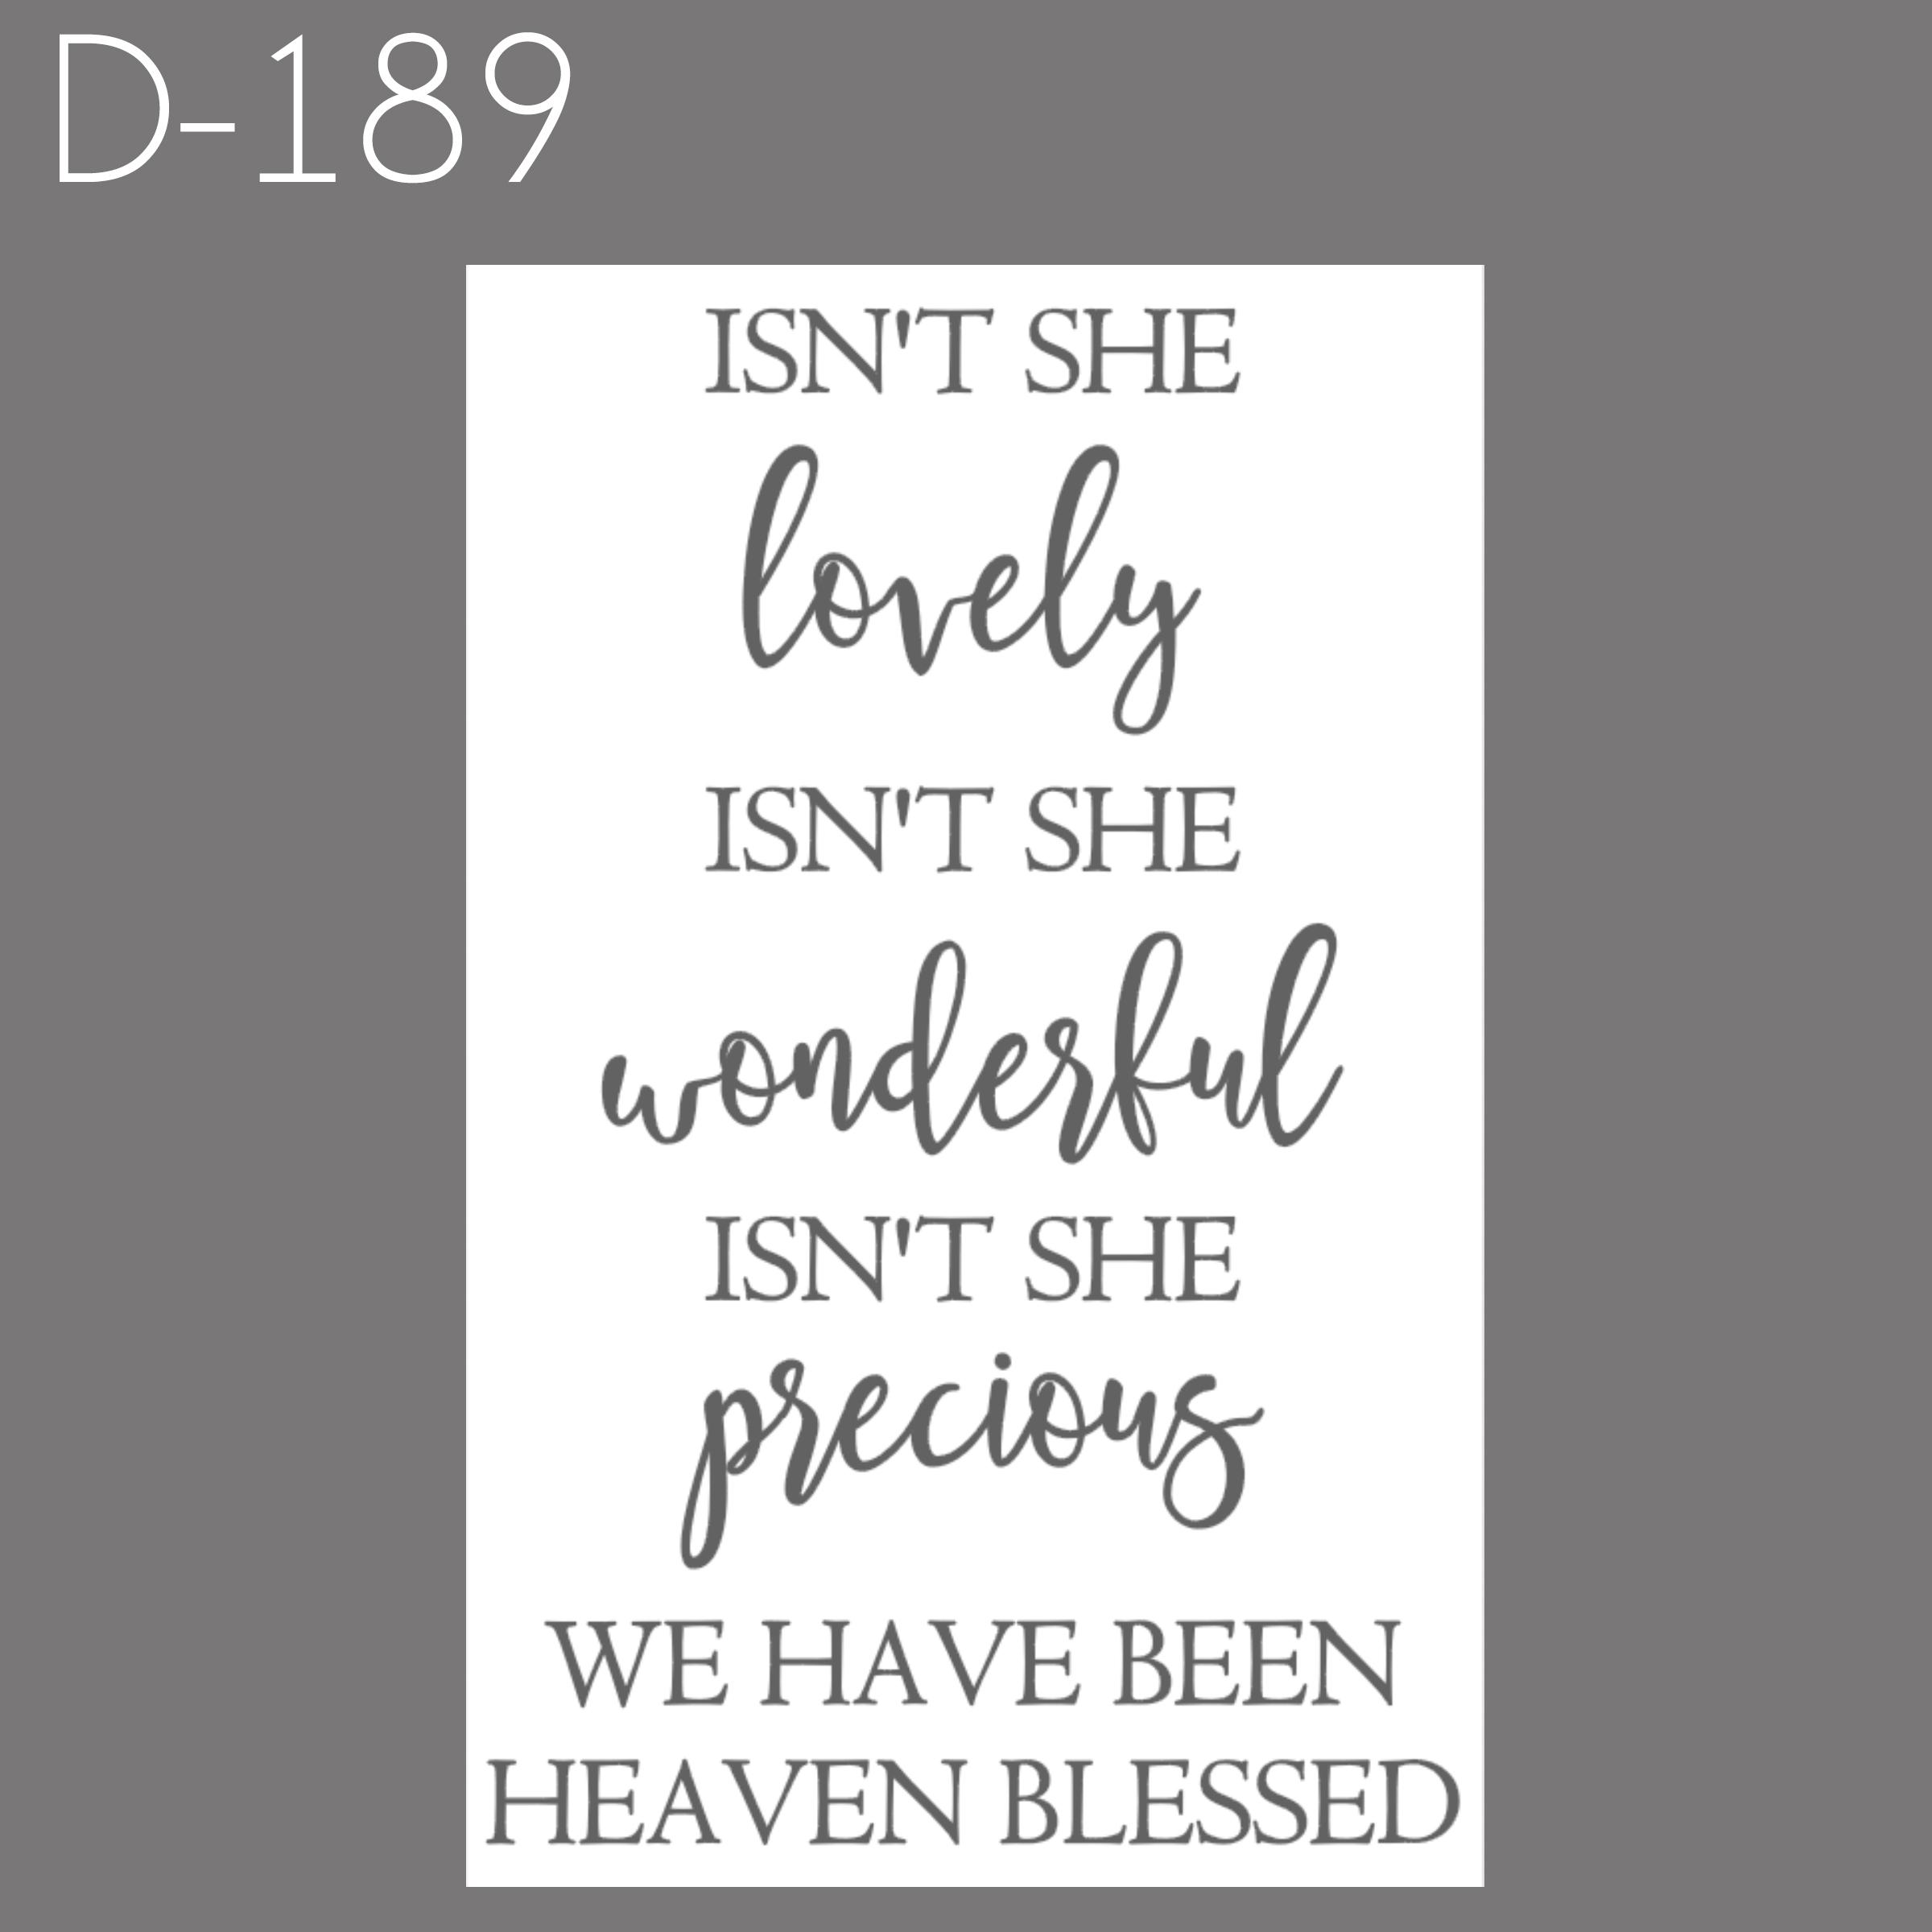 D189 - Isn't She Lovely.jpg